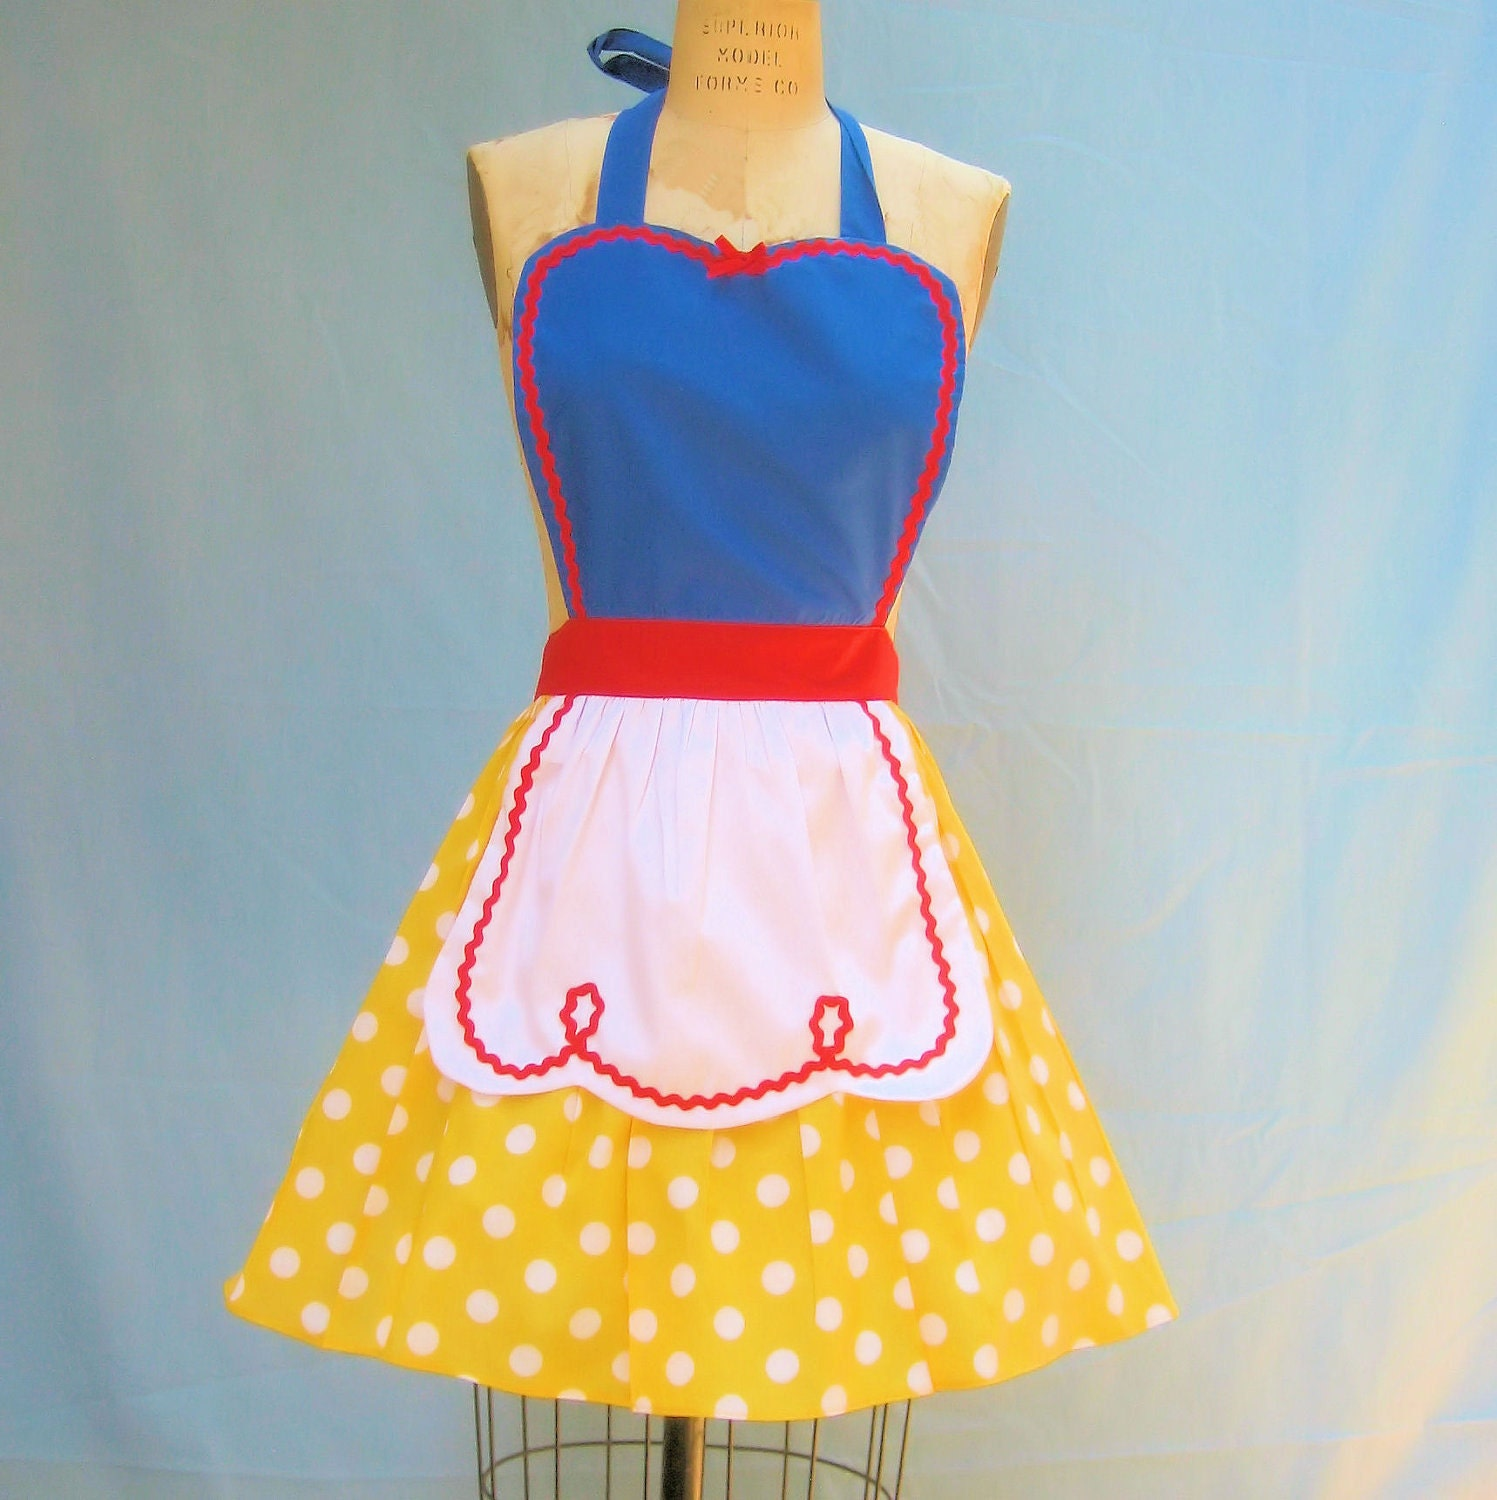 White pinafore apron costume - 36 Best Images About Apron Addiction On Pinterest Sleeping Beauty The Gathering And My Little Pony